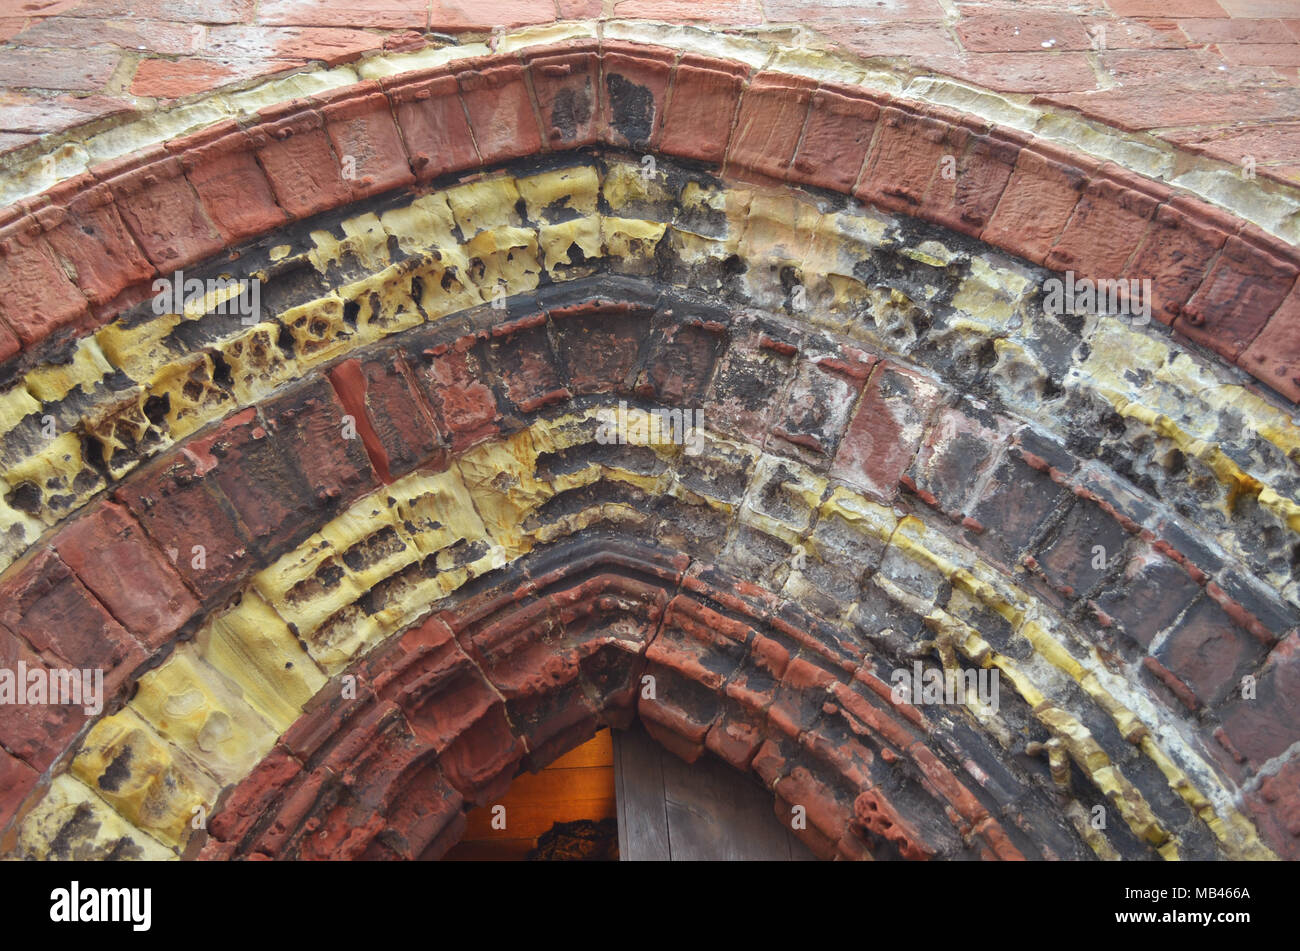 Decorative details in ancient St Magnus cathedral, Kirkwall, Orkney islands, Scotland - Stock Image